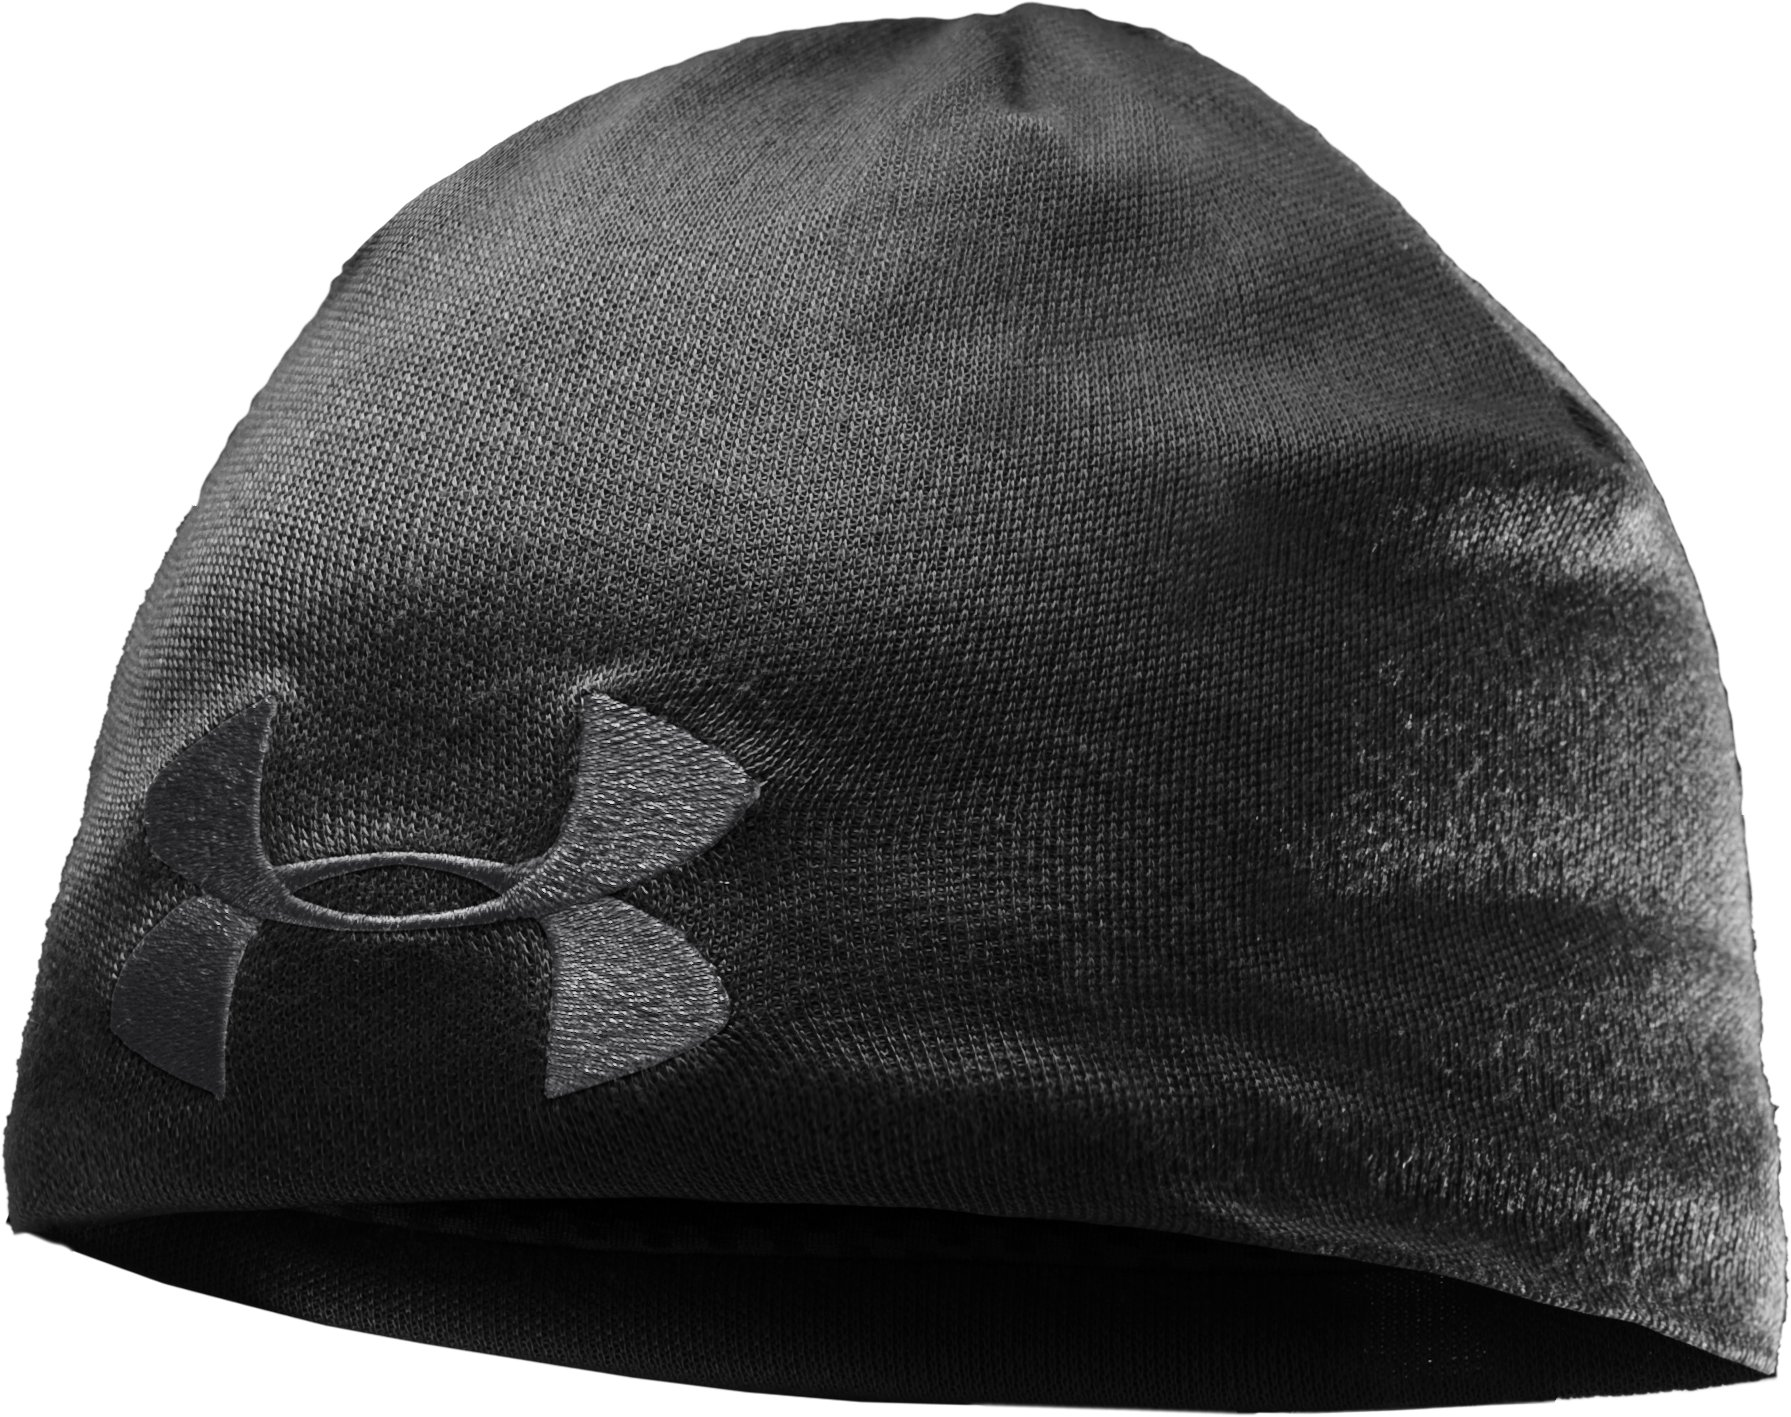 Men's Solid Active Beanie, Black , zoomed image